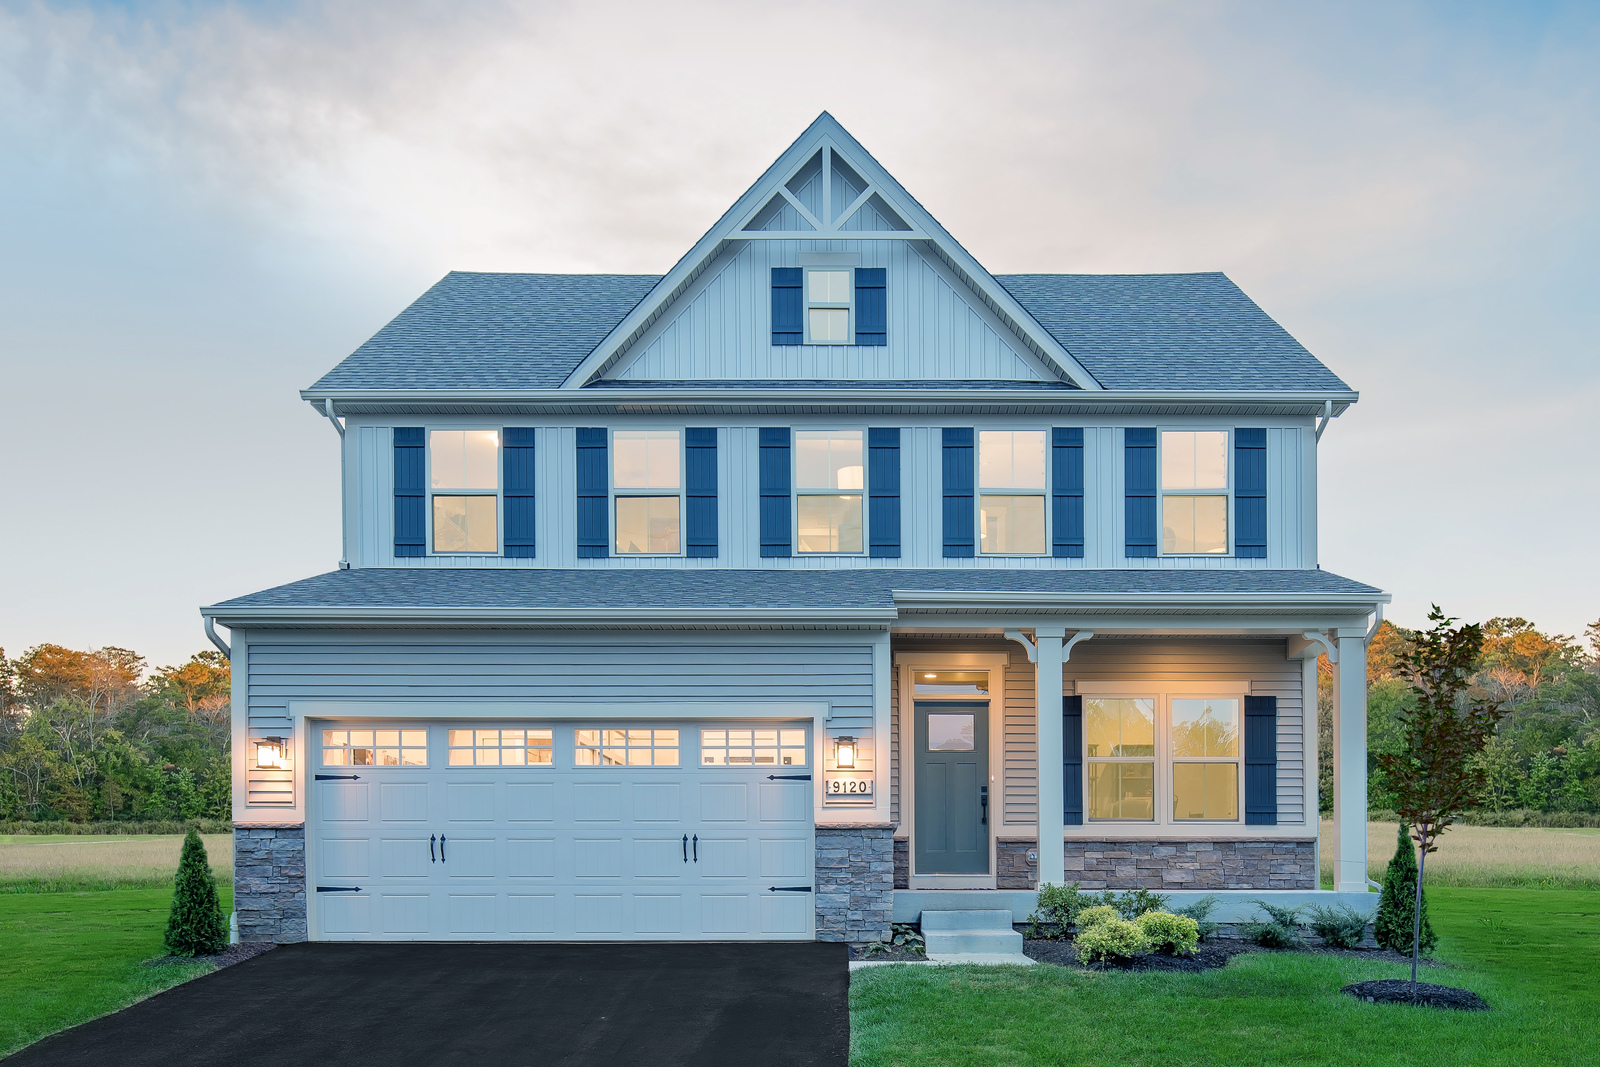 New Homes For Sale At Fairway Glenn In Willoughby Oh Within The